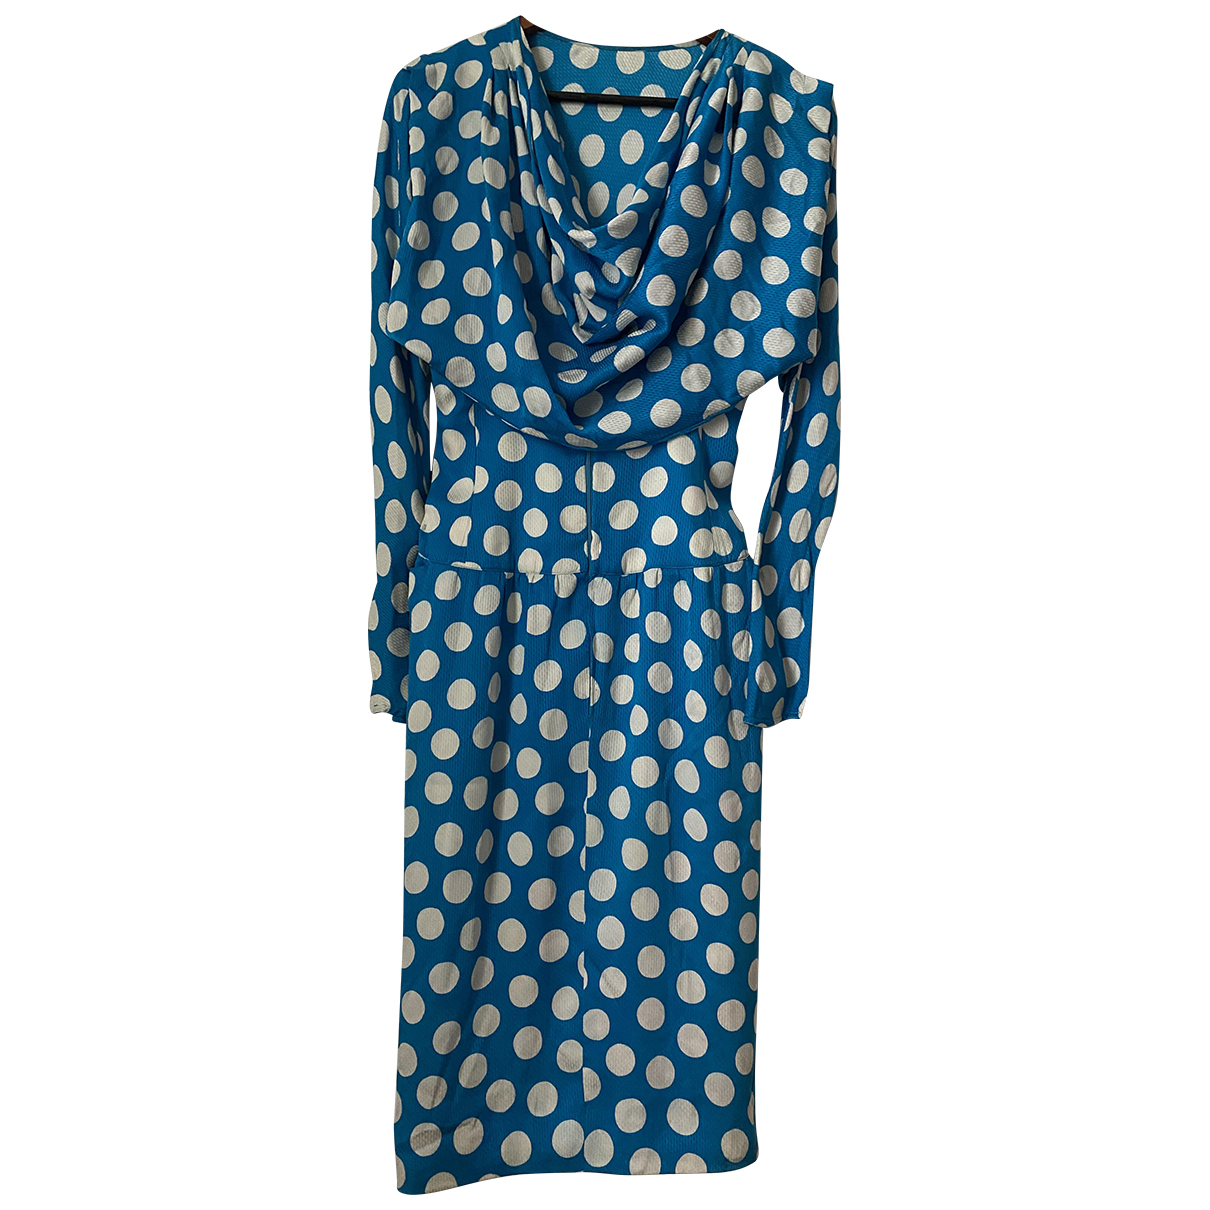 Emanuel Ungaro N Blue Silk dress for Women 8 UK